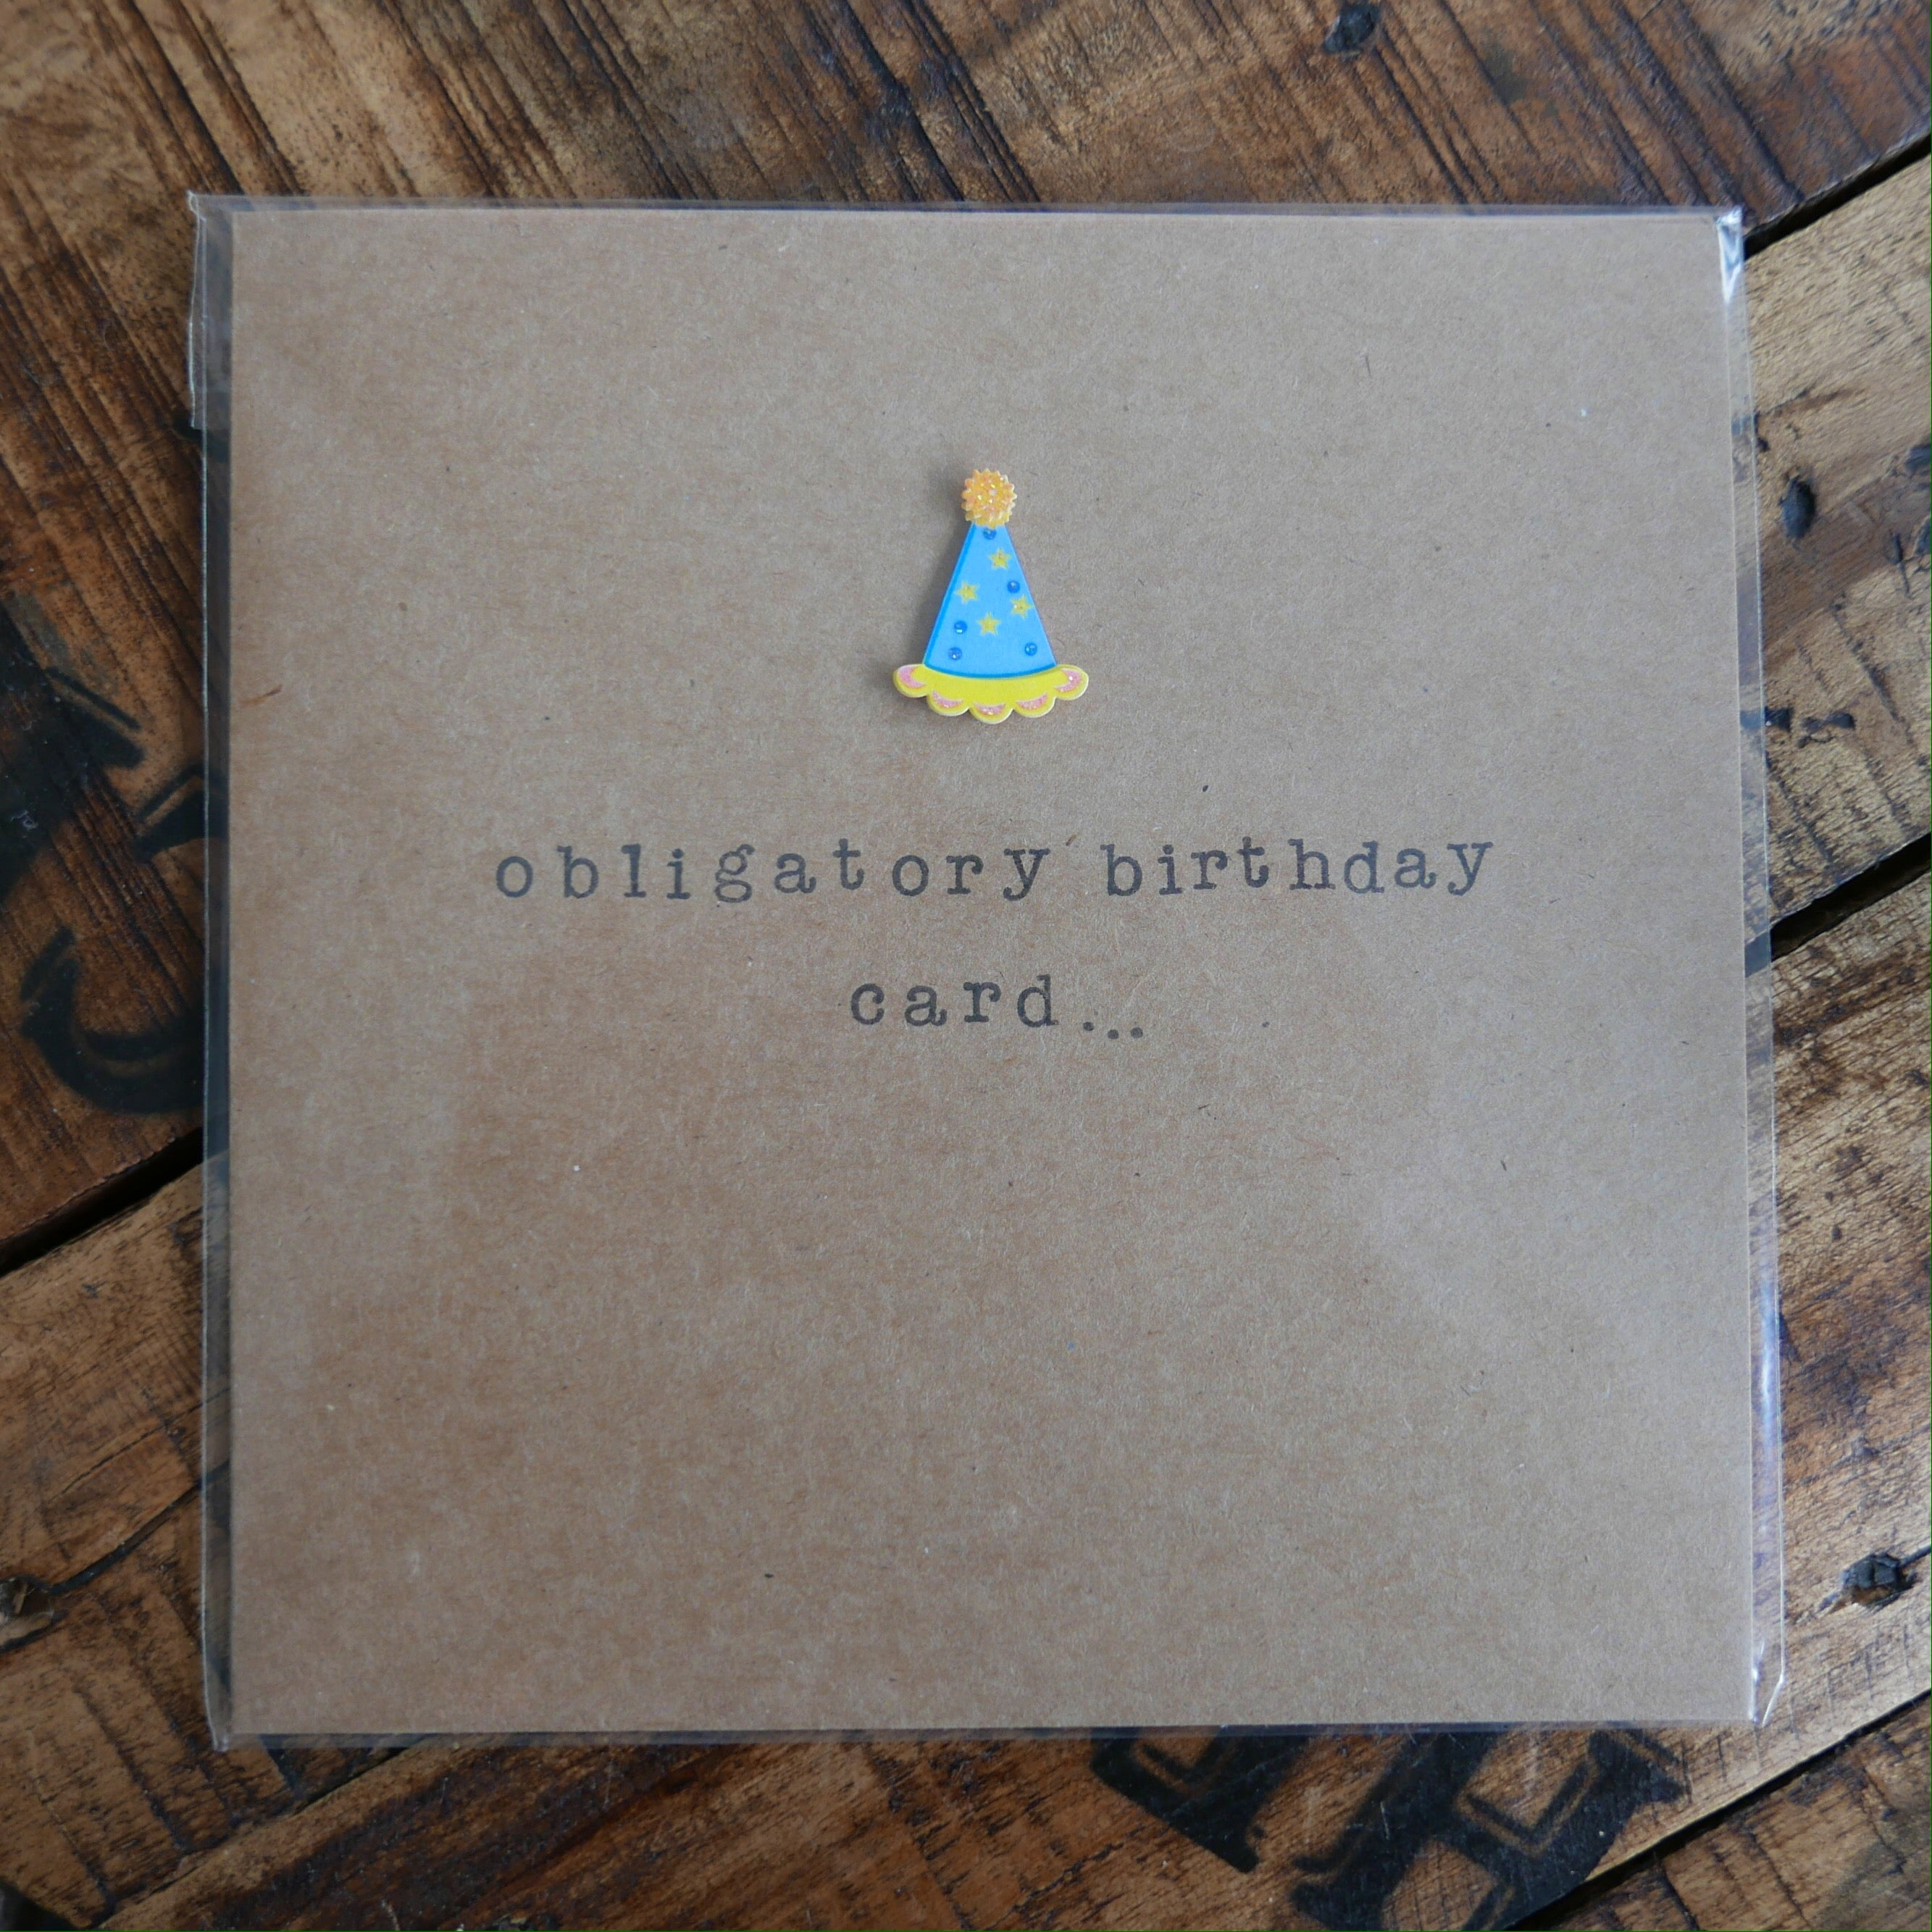 Obligatory Birthday Card - Greeting Card